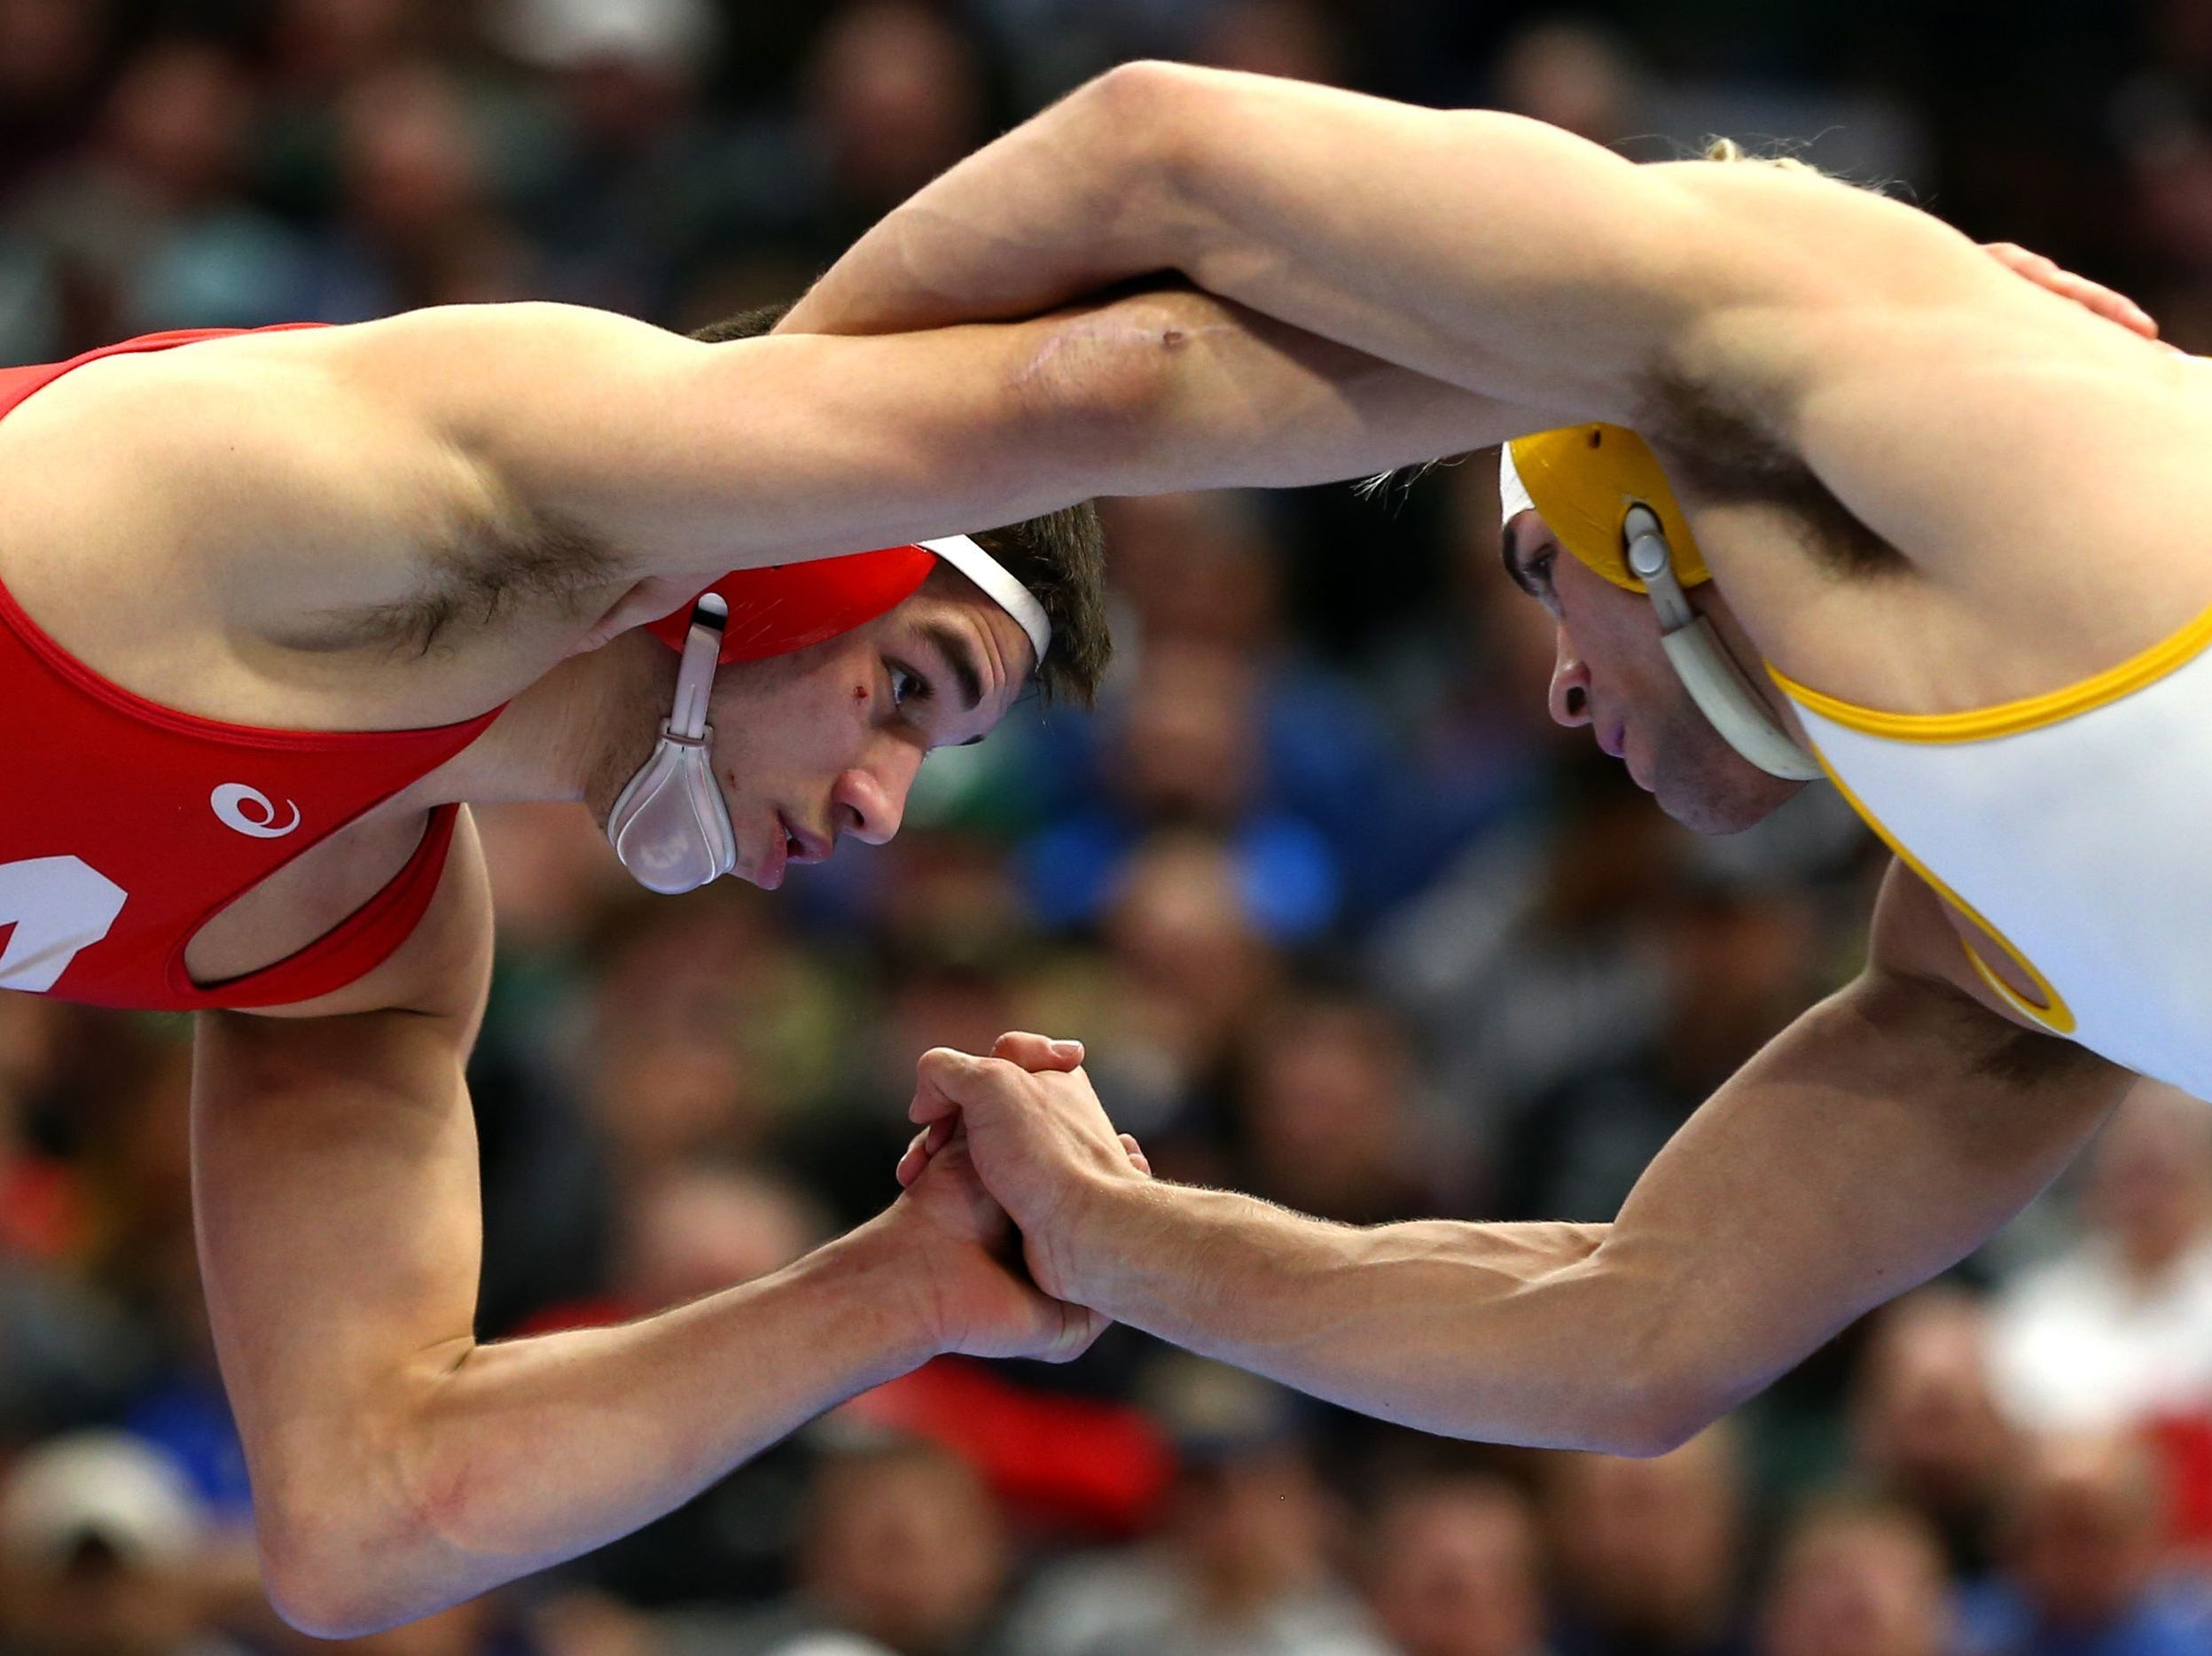 Wyoming  wrestler  Meredith, right, competes against Cornell wrester Diakomihalis  during the NCAA Wrestling DI Wrestling Championships at Quicken Loans Arena.  Aaron Doster/USA TODAY Sports Mar 17, 2018; Cleveland, OH, USA; Wyoming Cowboys wrestler Bryce Meredith (white) competes against Cornell wrester Yianni Diakomihalis (red) during the NCAA Wrestling DI Wrestling Championships at Quicken Loans Arena. Mandatory Credit: Aaron Doster-USA TODAY Sports